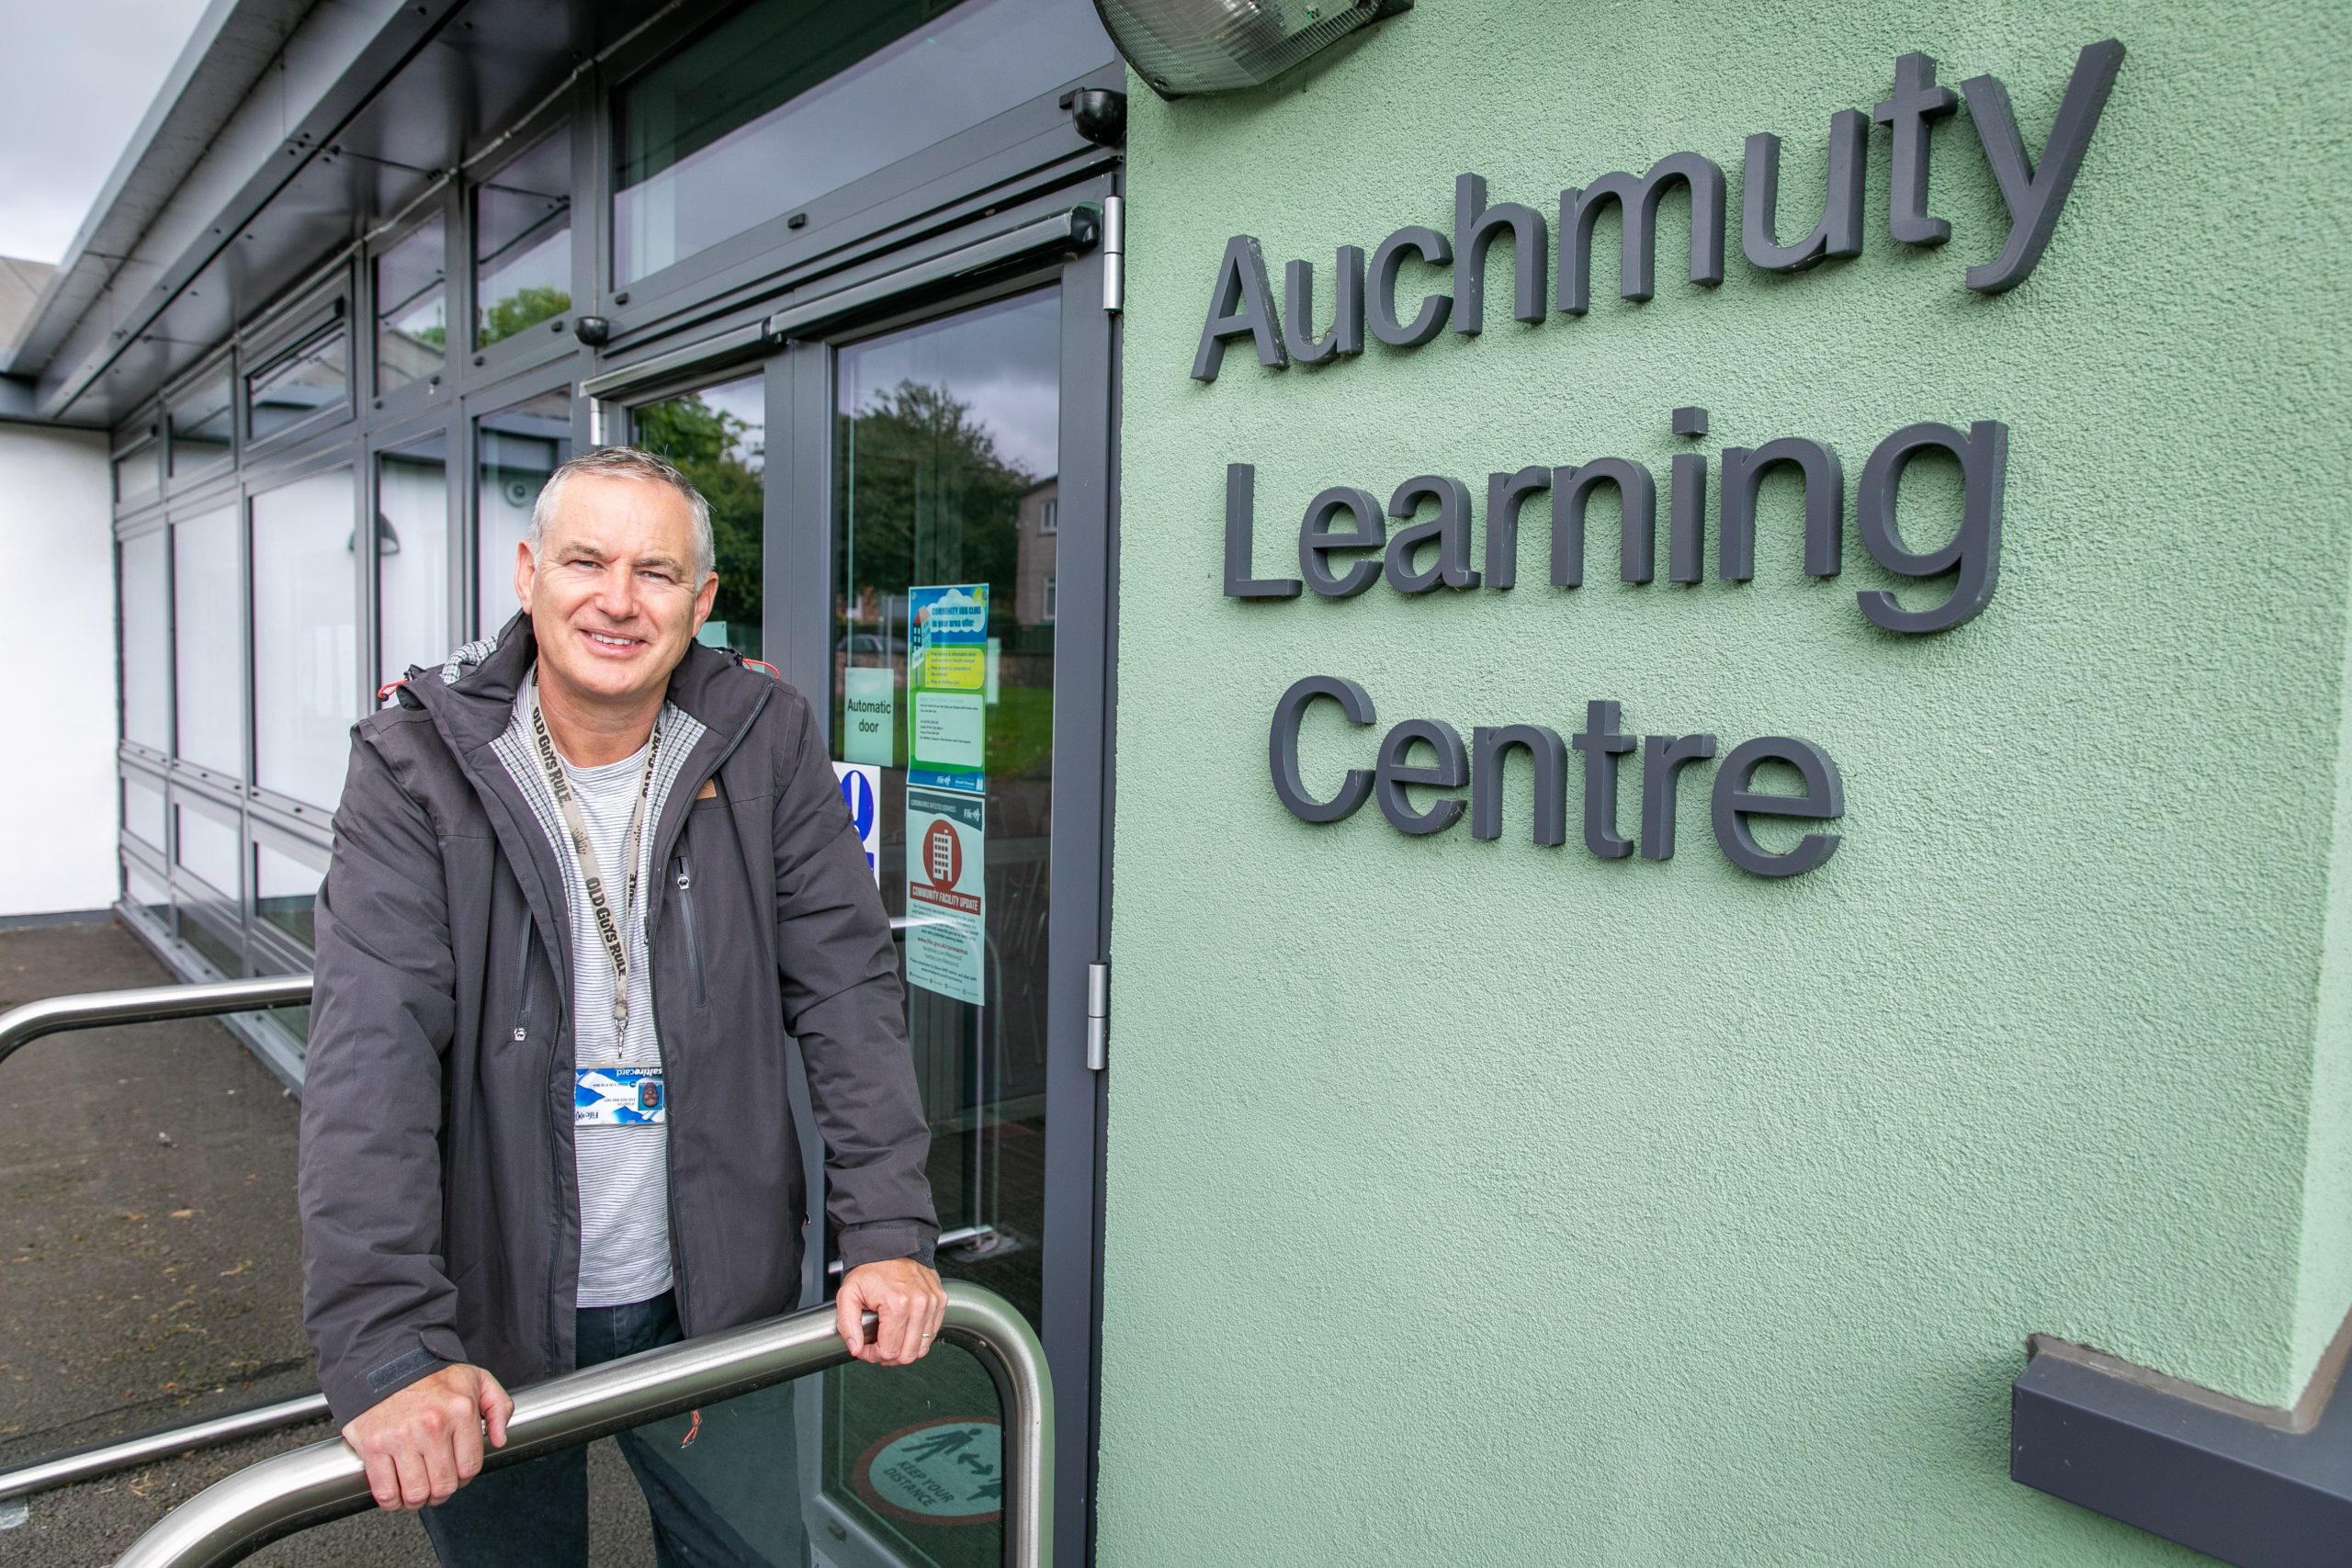 Fife Council Lead Officer, JP Easton outside Auchmuty Learning Centre in Glenrothes which remains closed due to COVID19 restrictions, but is pivotal to the well being and mental health of many Glenrothes residents - Thursday 20th August 2020 - Steve Brown / DCT Media